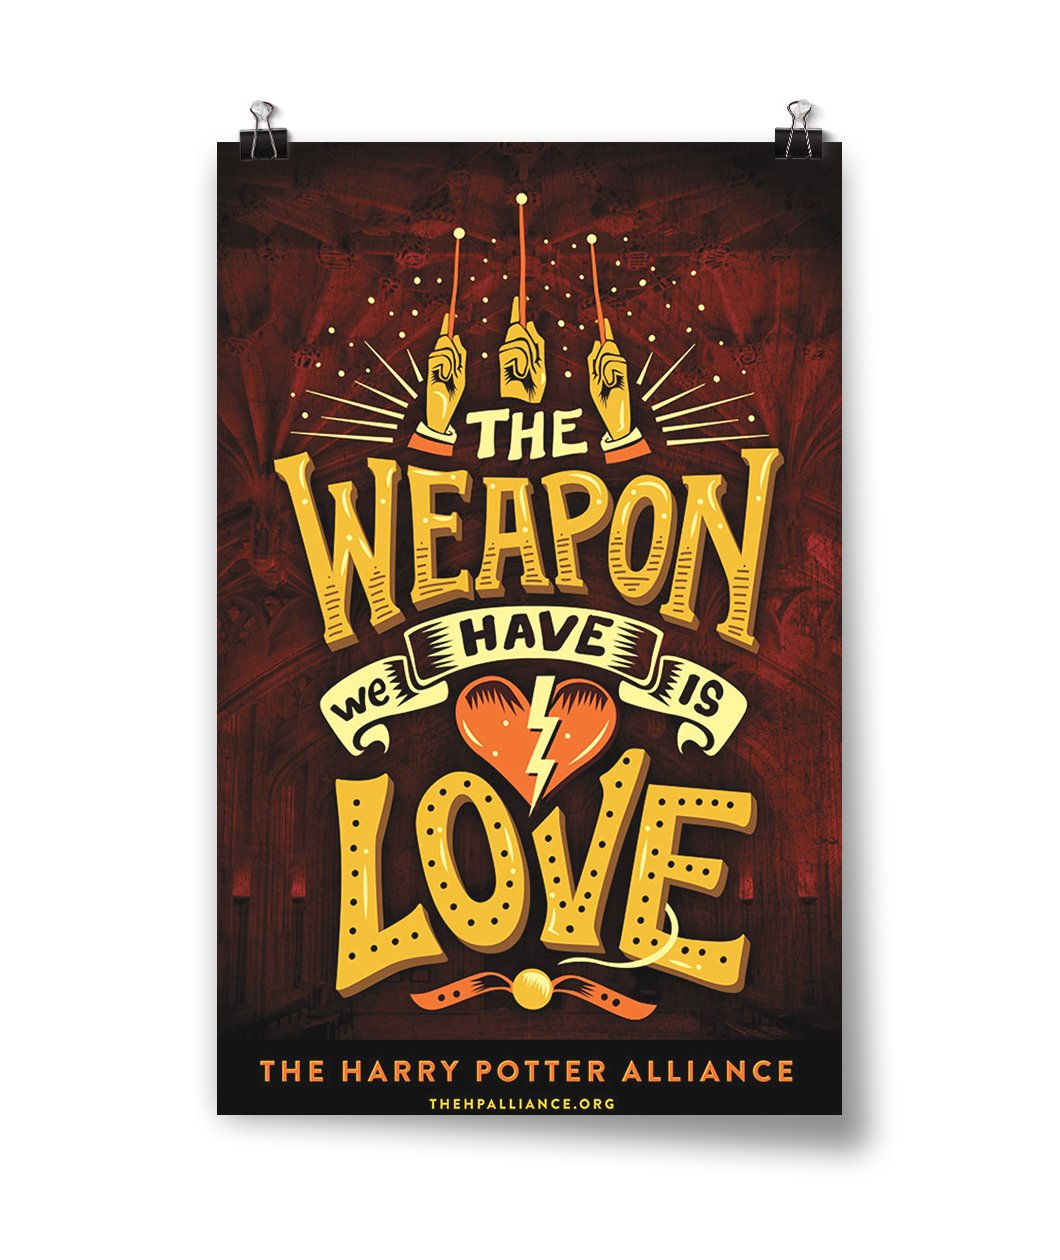 weapon-we-have-is-love-poster_1060x1060_2x.jpg